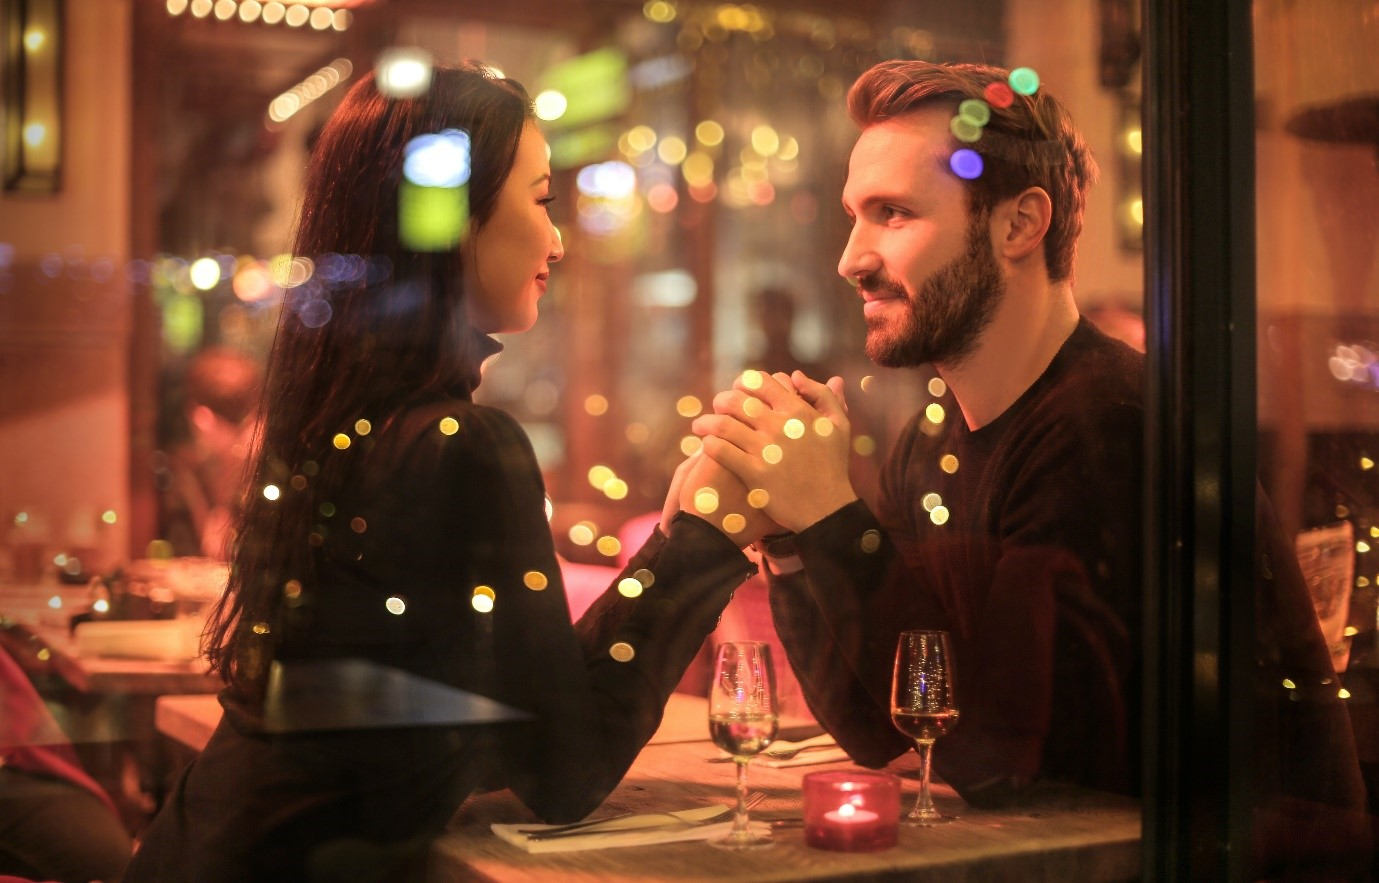 Four Moves that can Radically Transform your Relationships